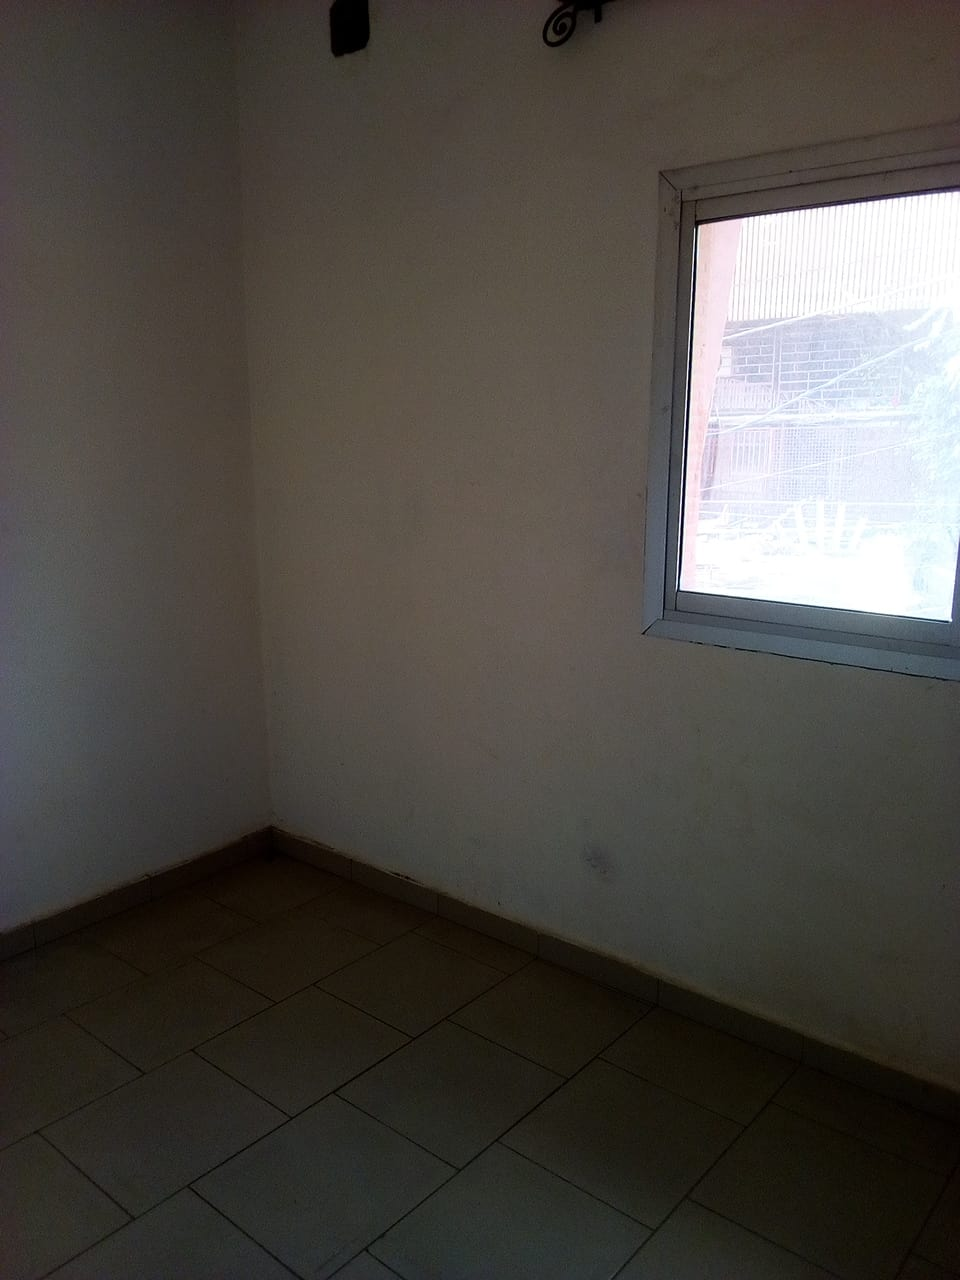 Office to rent at Yaoundé, Tsinga, pas loin de fecafoot -  m2 - 200 000 FCFA